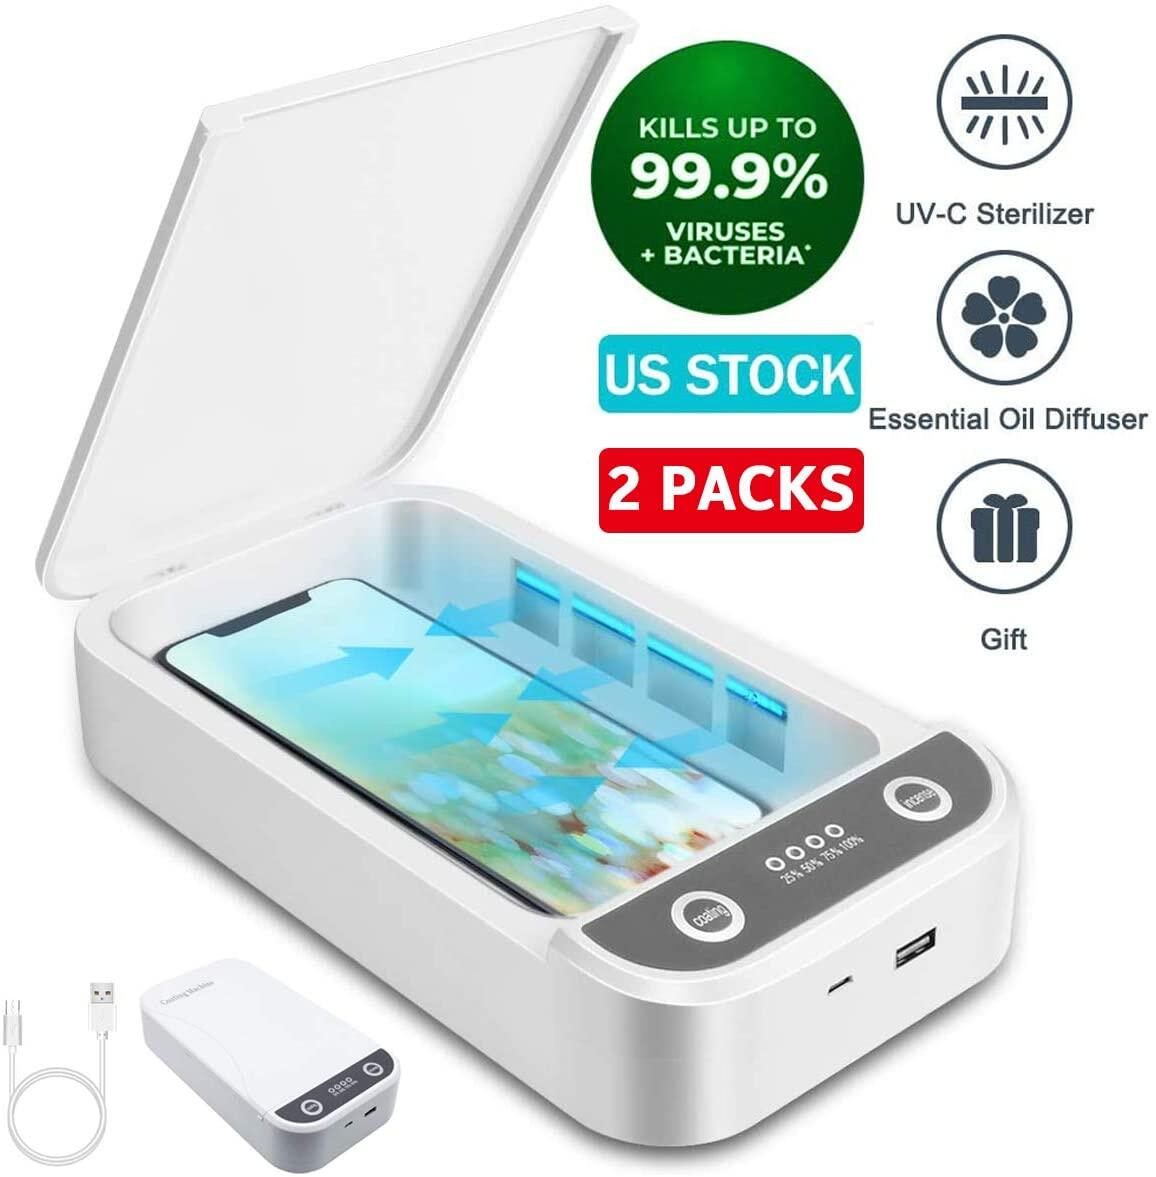 Cell Phone Cleaners Sanitizer Box for iOS Android Smartphones Toothbrush Pacifier Portable UV Sterilizer Aromatherapy Function Disinfector UV Cell Phone Sanitizer